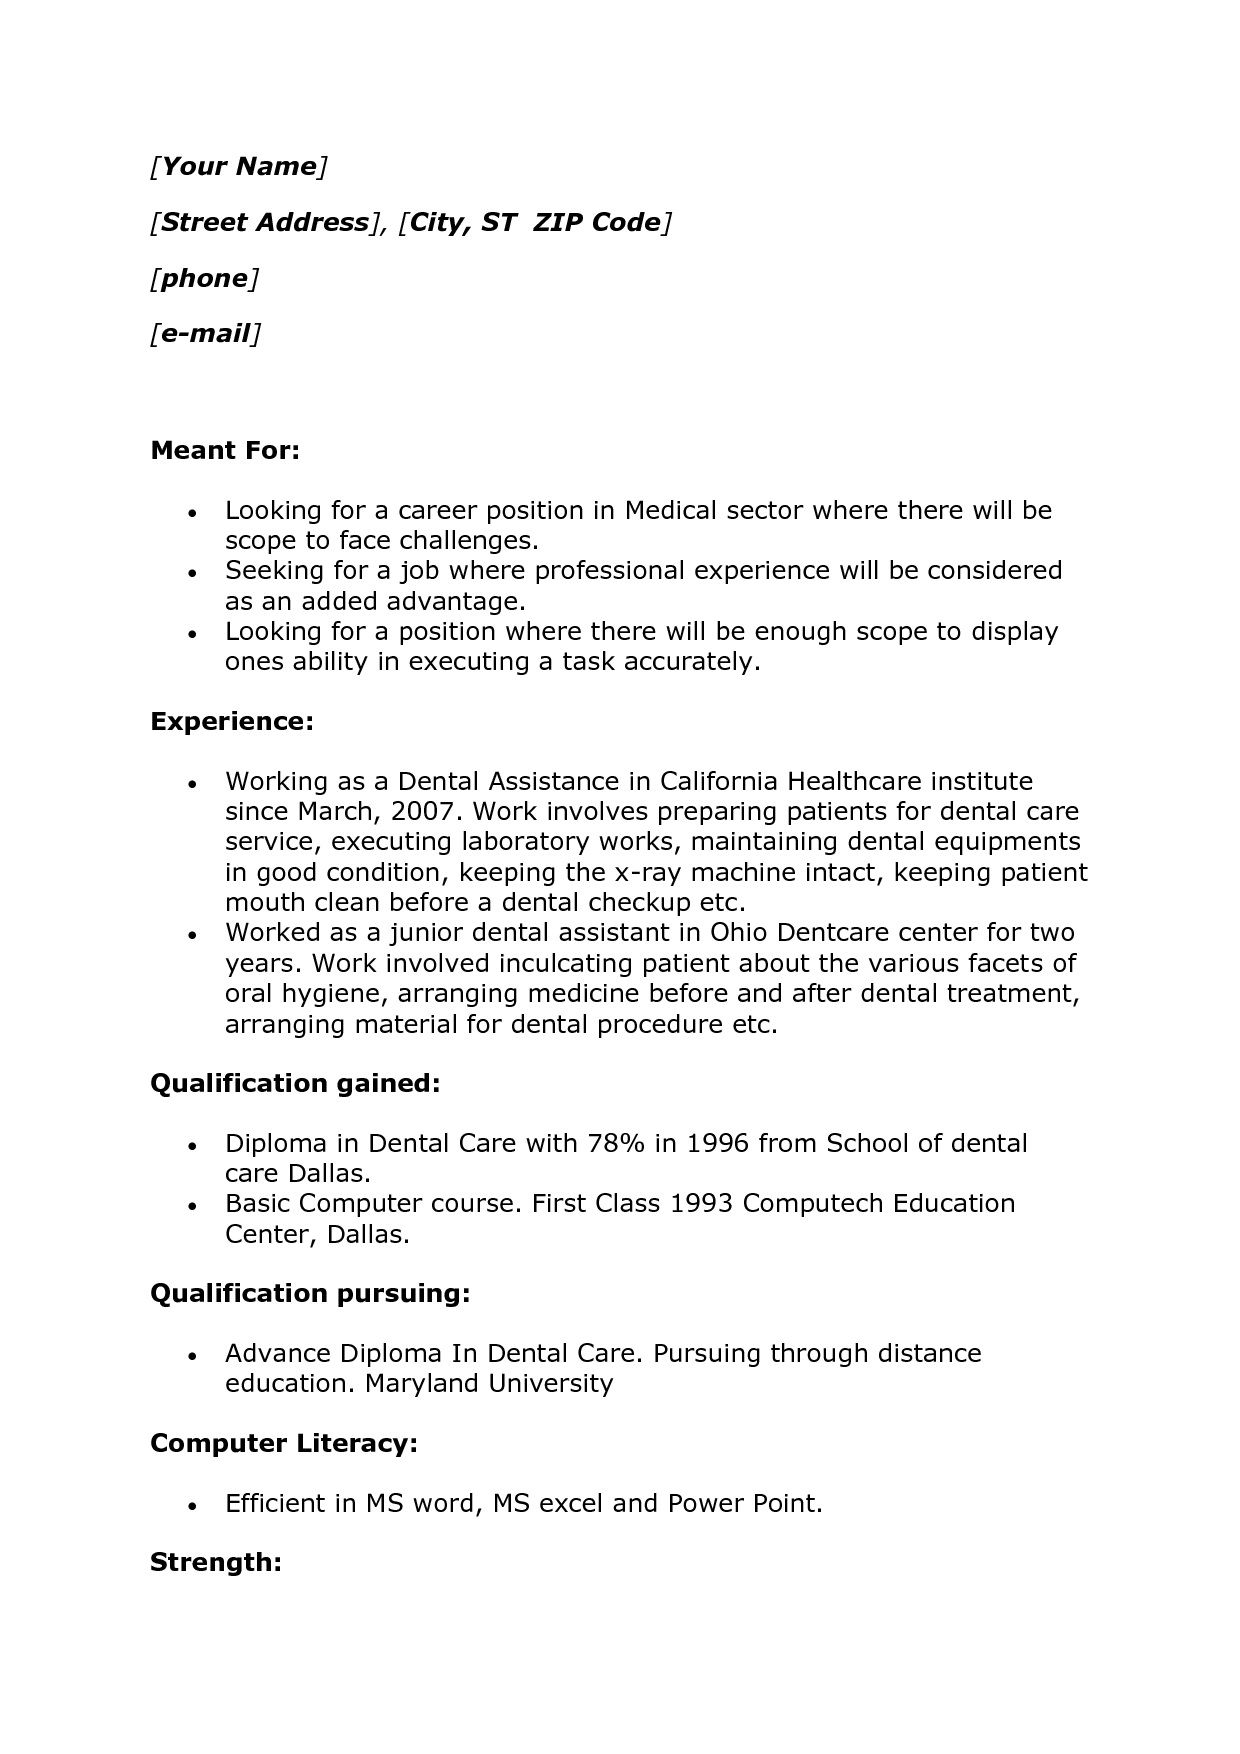 Sample Resume With No Experience Job Resume No Experience Examples #919  Httptopresume